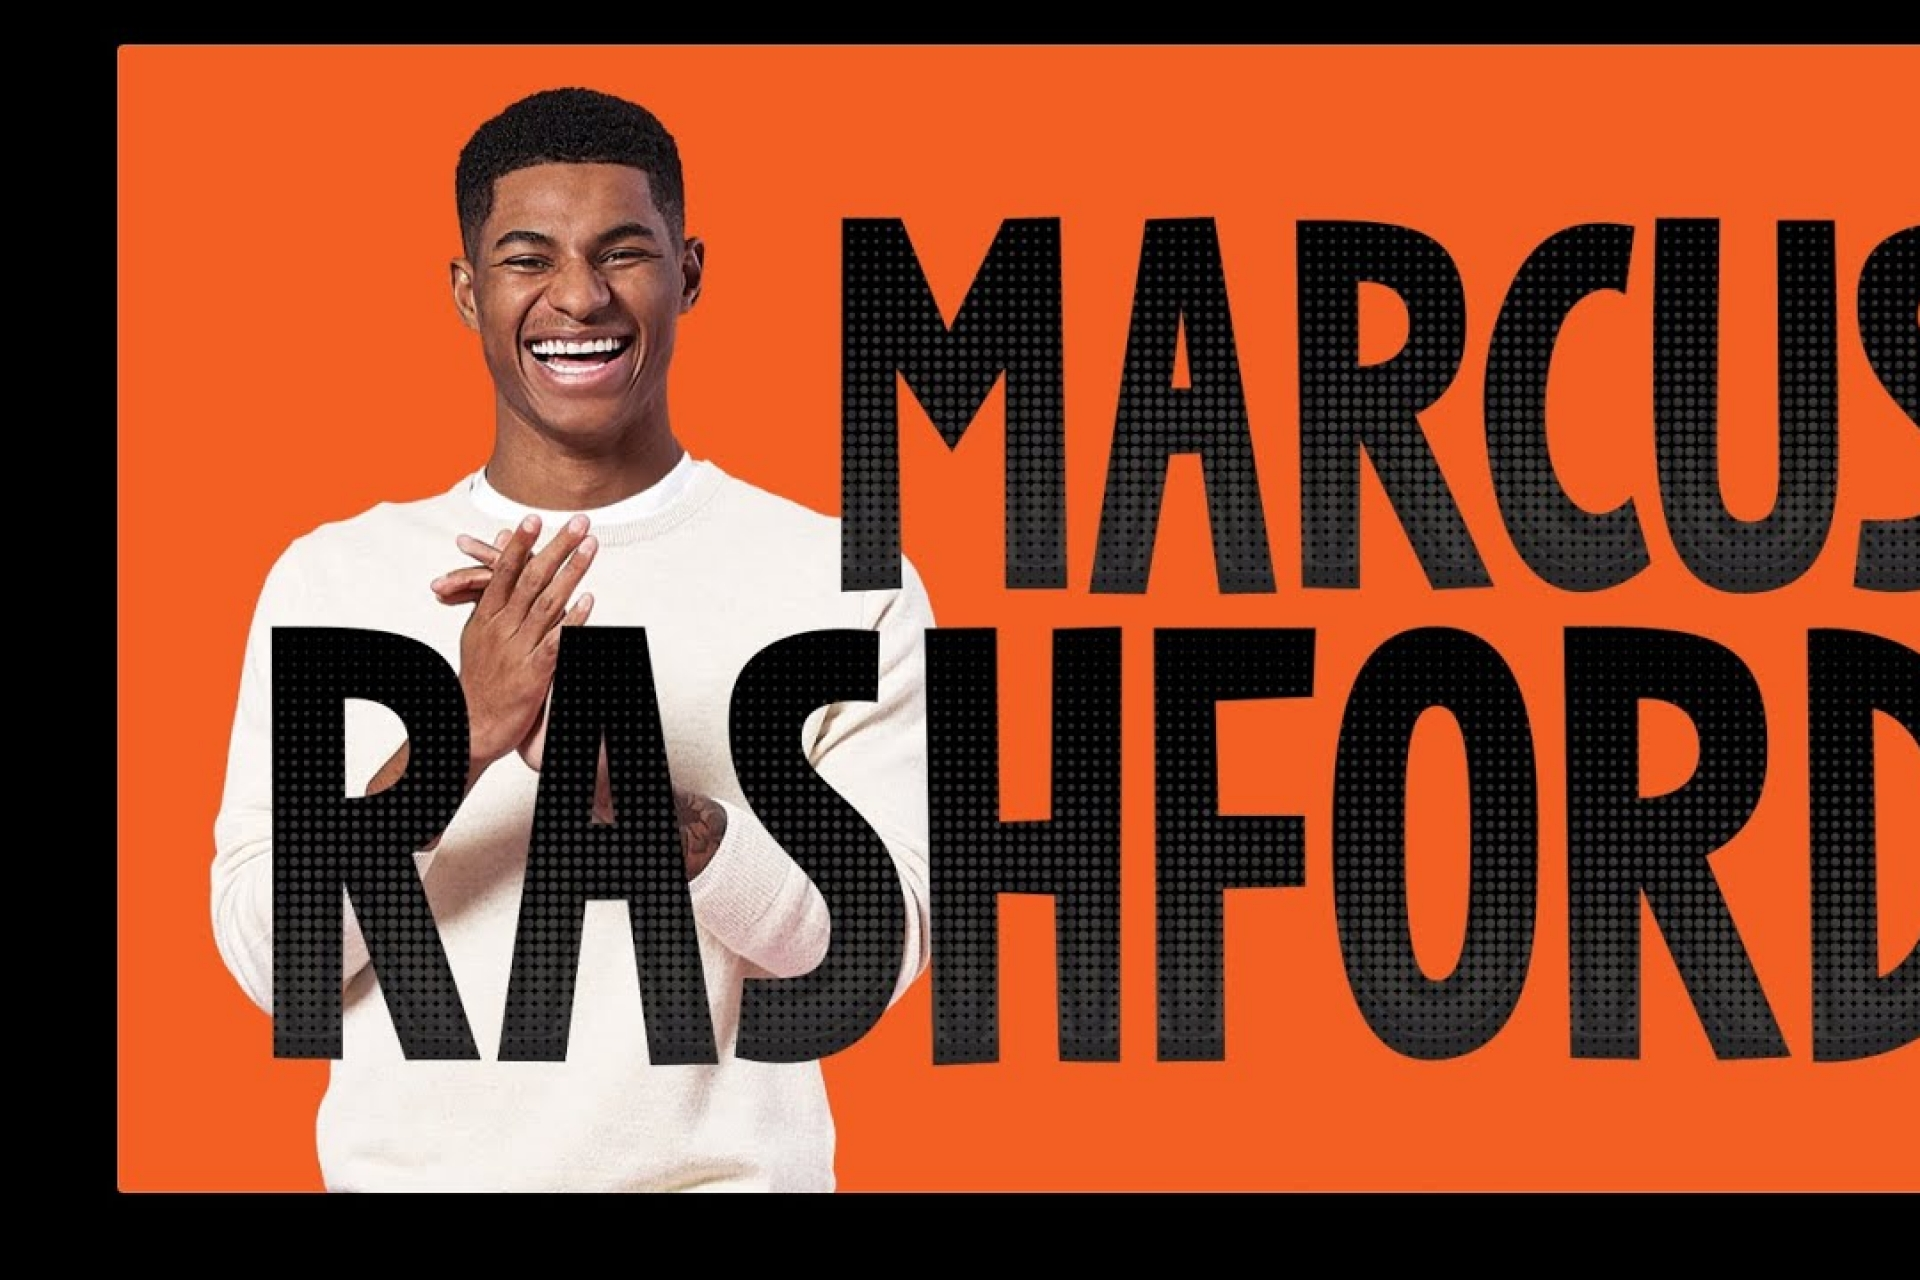 It's coming home! Isn't it? It is if you listen to Marcus Rashford 's children's book You Are A Champion